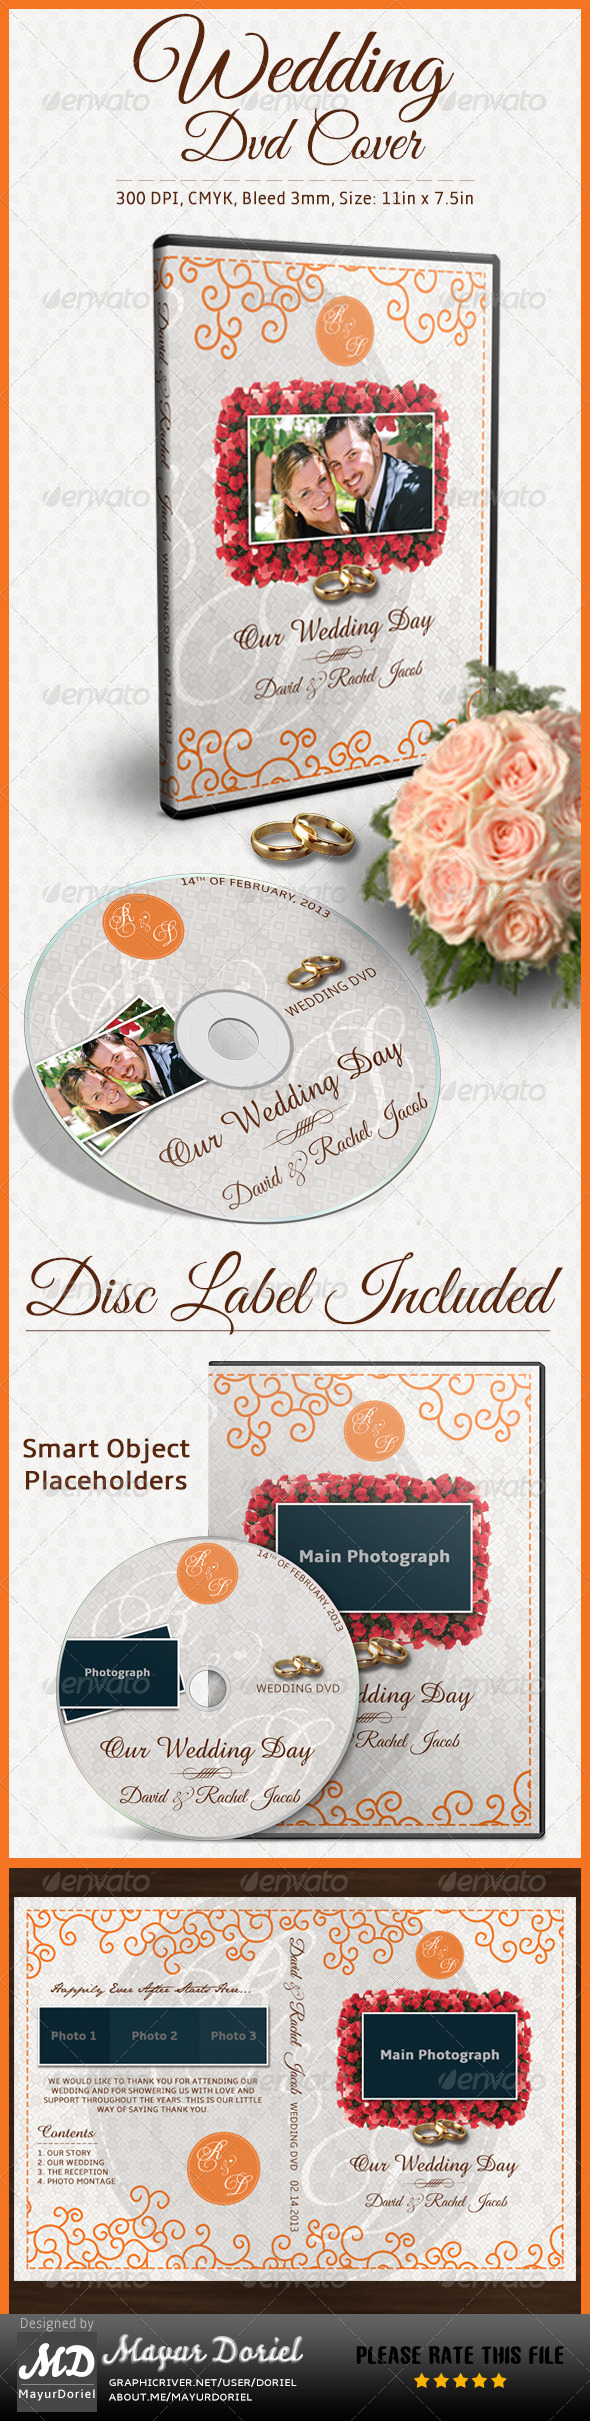 GraphicRiver Wedding DVD Cover 4096309